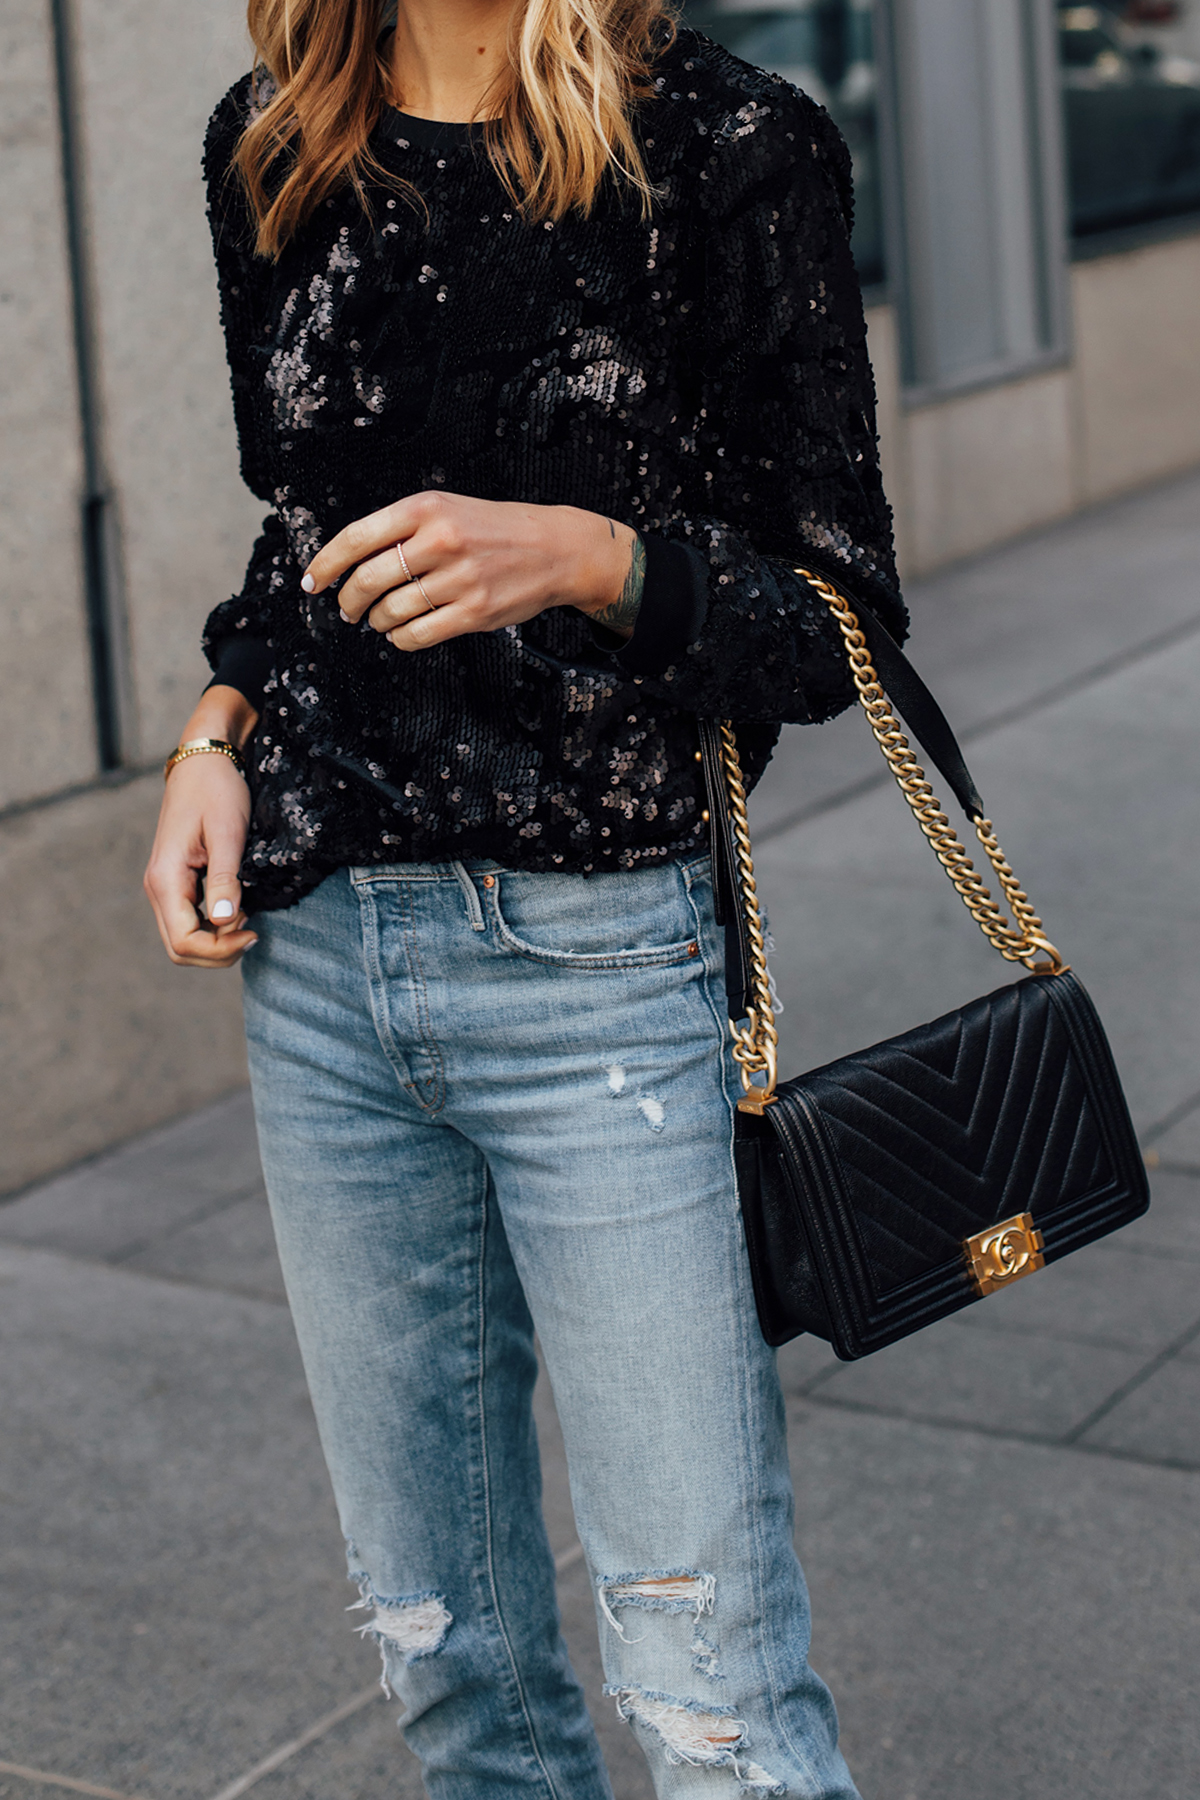 Blonde Woman Wearing Black Sequin Top Ripped Skinny Jeans Chanel Black Boy Bag Fashion Jackson San Diego Fashion Blogger Street Style NYE Outfit